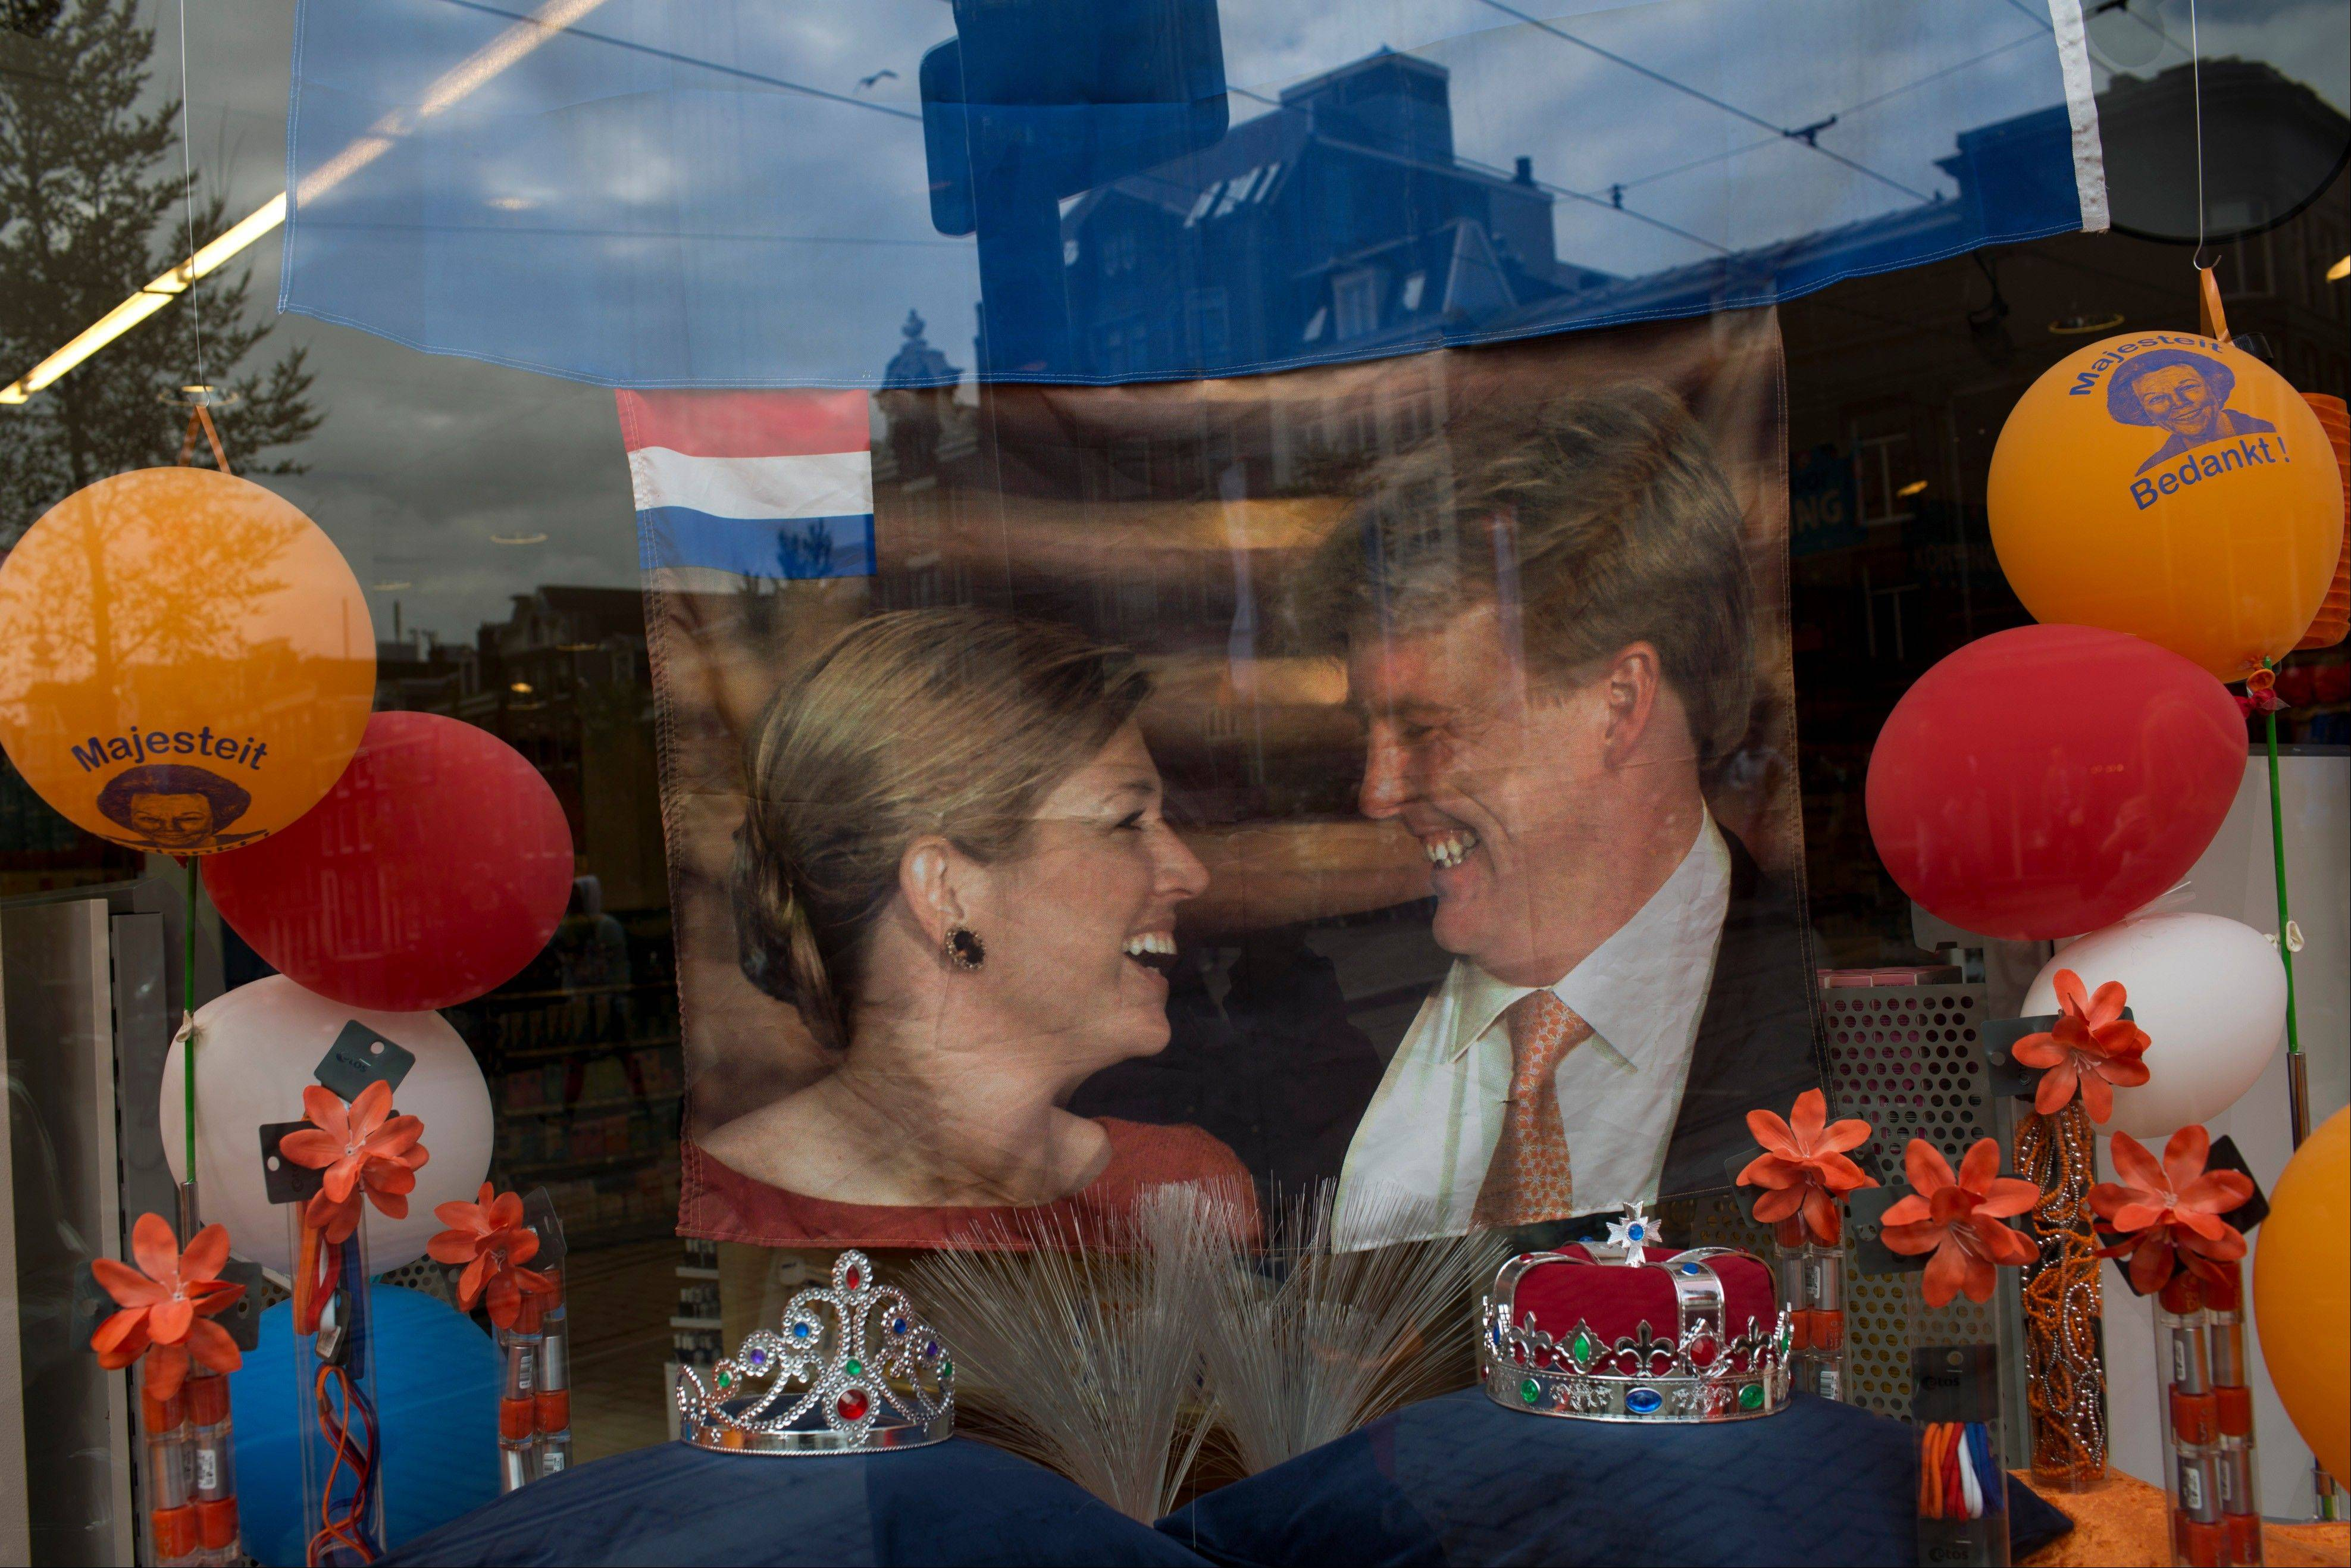 A flag bearing the image of Dutch Crown Prince Willem-Alexander and his wife, Princess Maxima, is placed on display in a show window along with other Royal memorabilia in downtown Amsterdam, Netherlands, on Monday. Dutch Queen Beatrix has announced she will relinquish the crown on Tuesday, April 30, after 33 years of reign, leaving the monarchy to her son Crown Prince Willem Alexander.